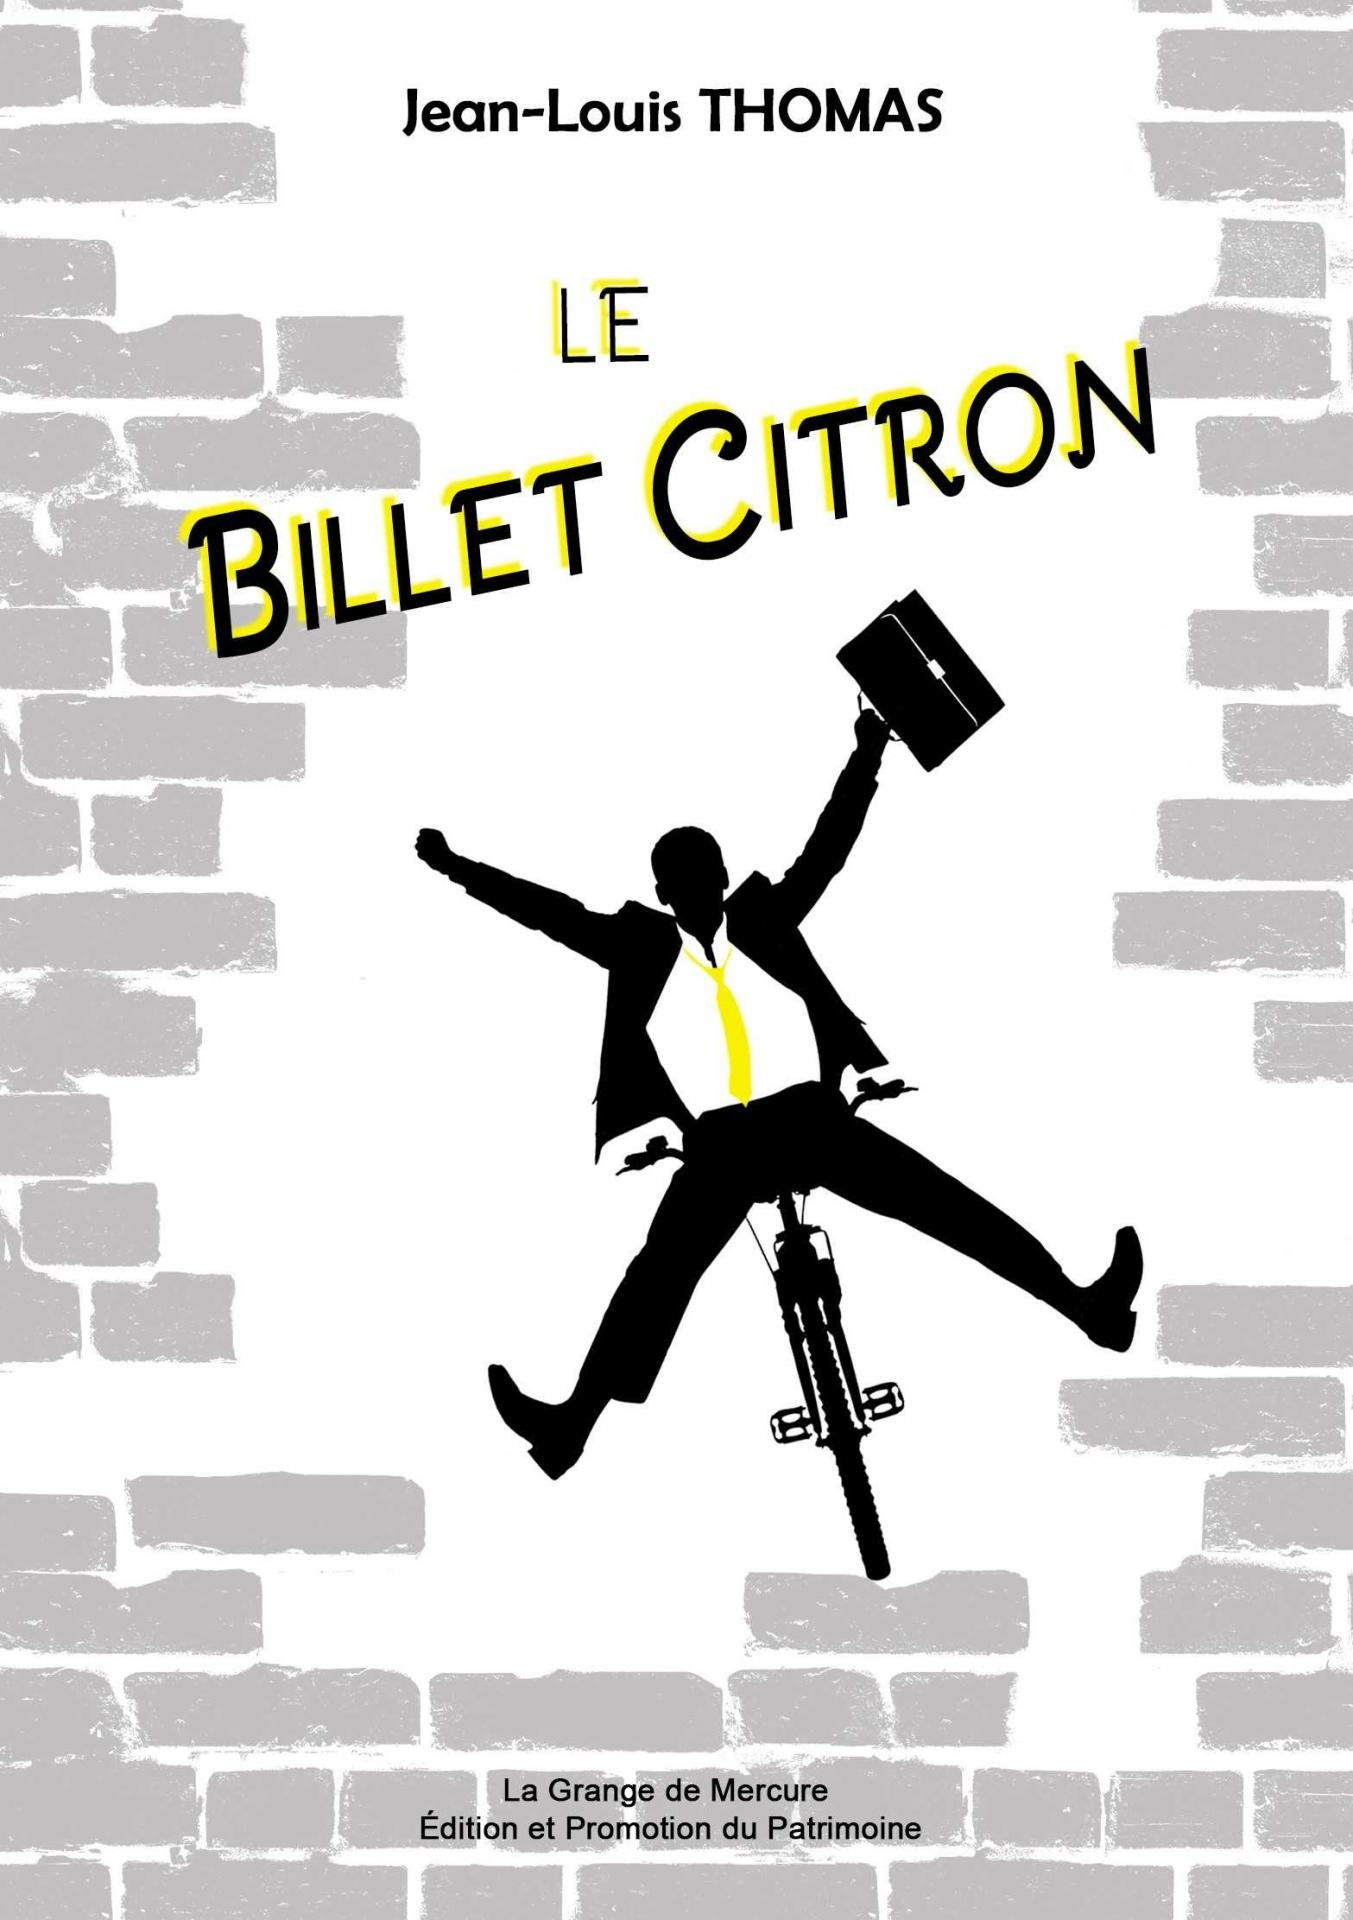 Billet citron web